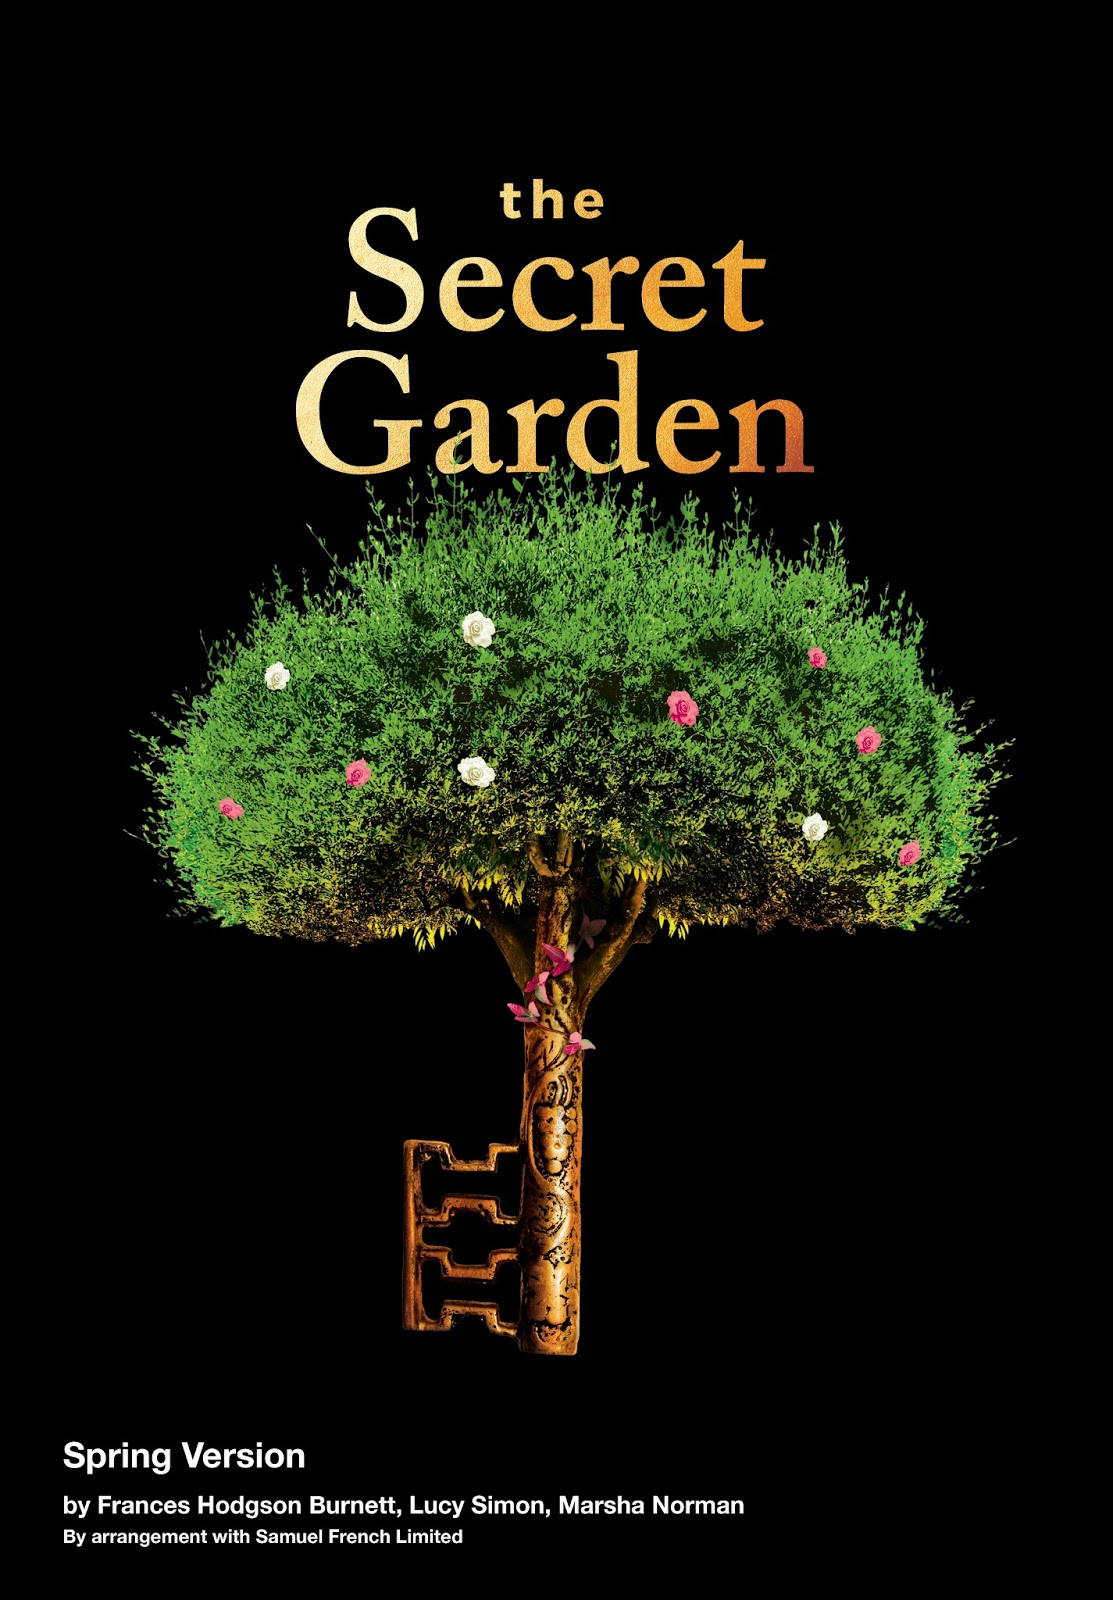 Secret Garden: The Secret Garden @ The Ambassadors Theatre